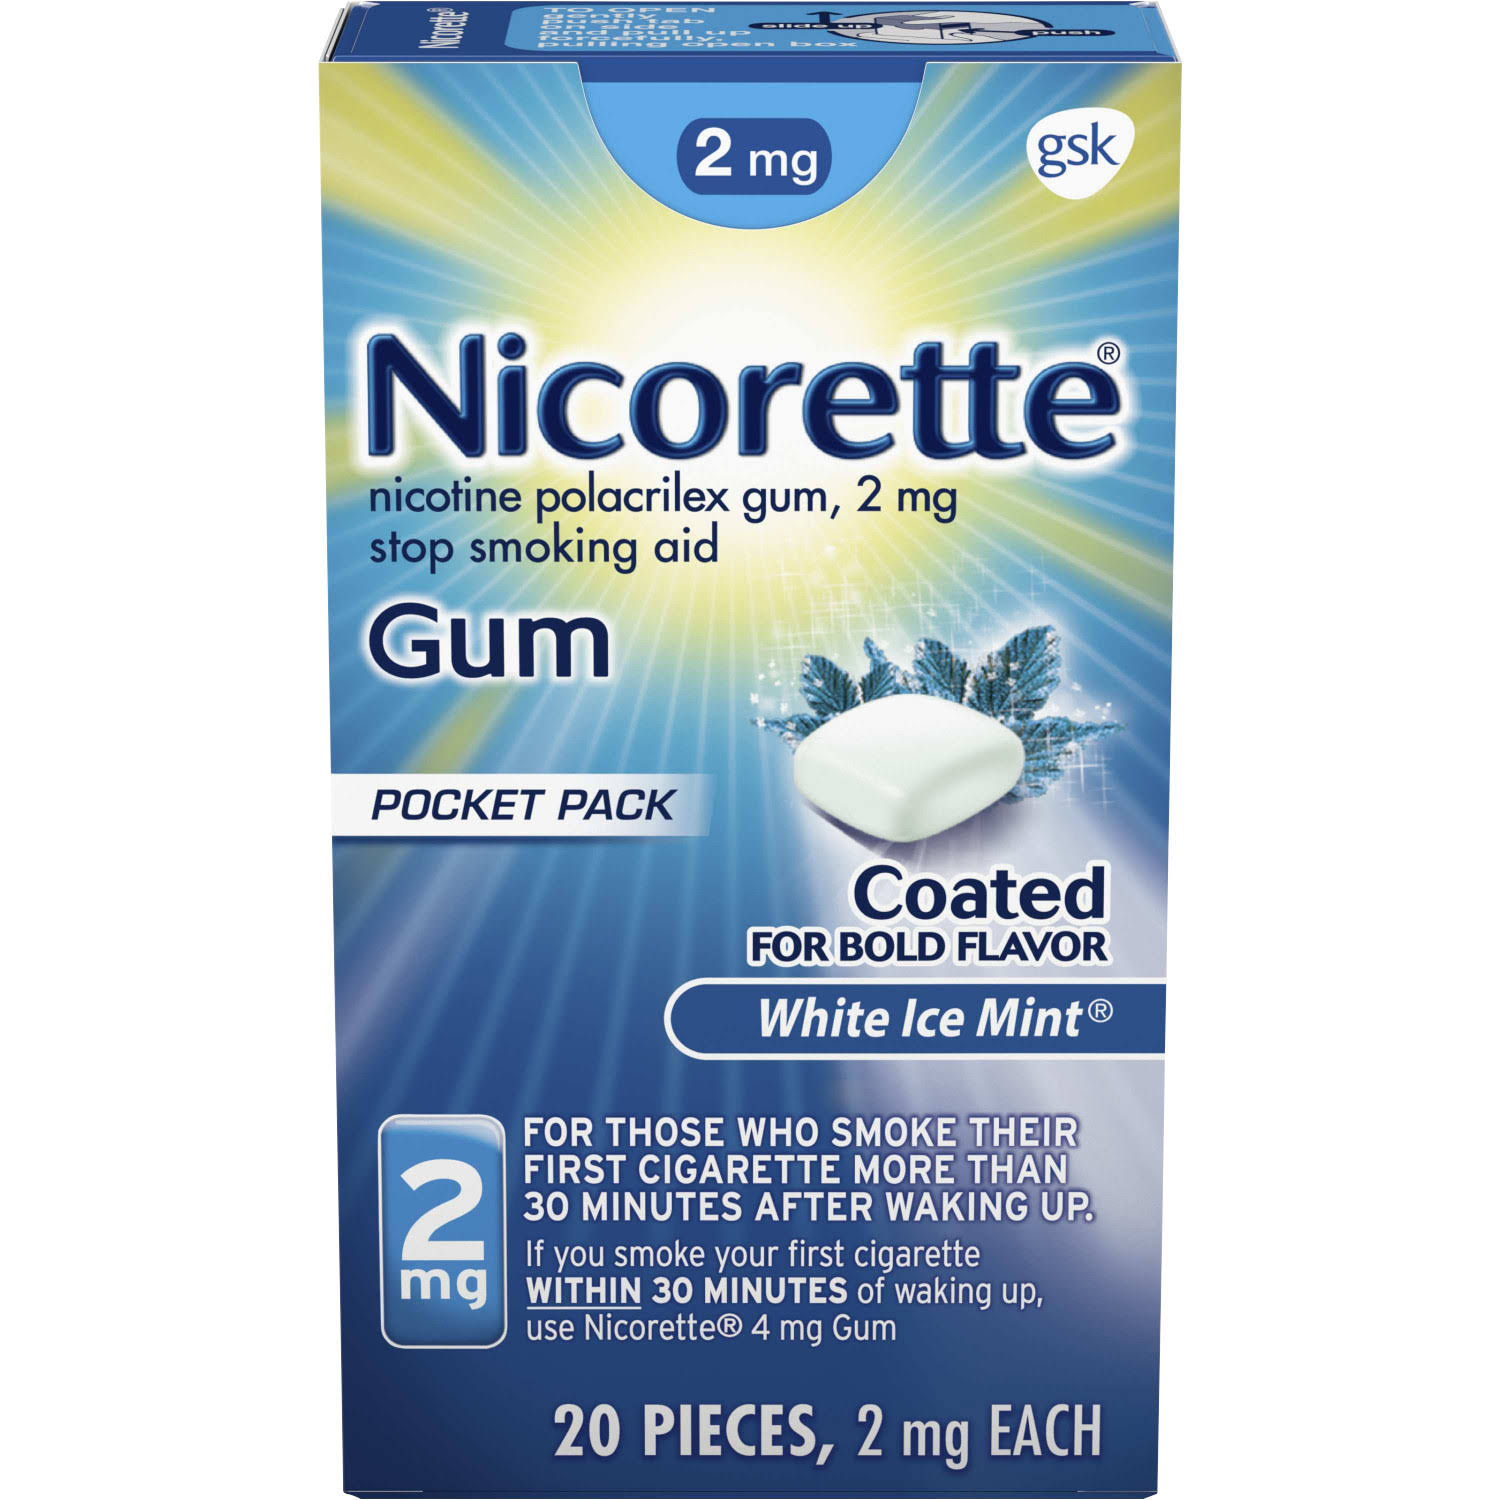 Nicorette Stop Smoking Aid, 2 mg, Gum, White Ice Mint, Pocket Pack - 20 pieces